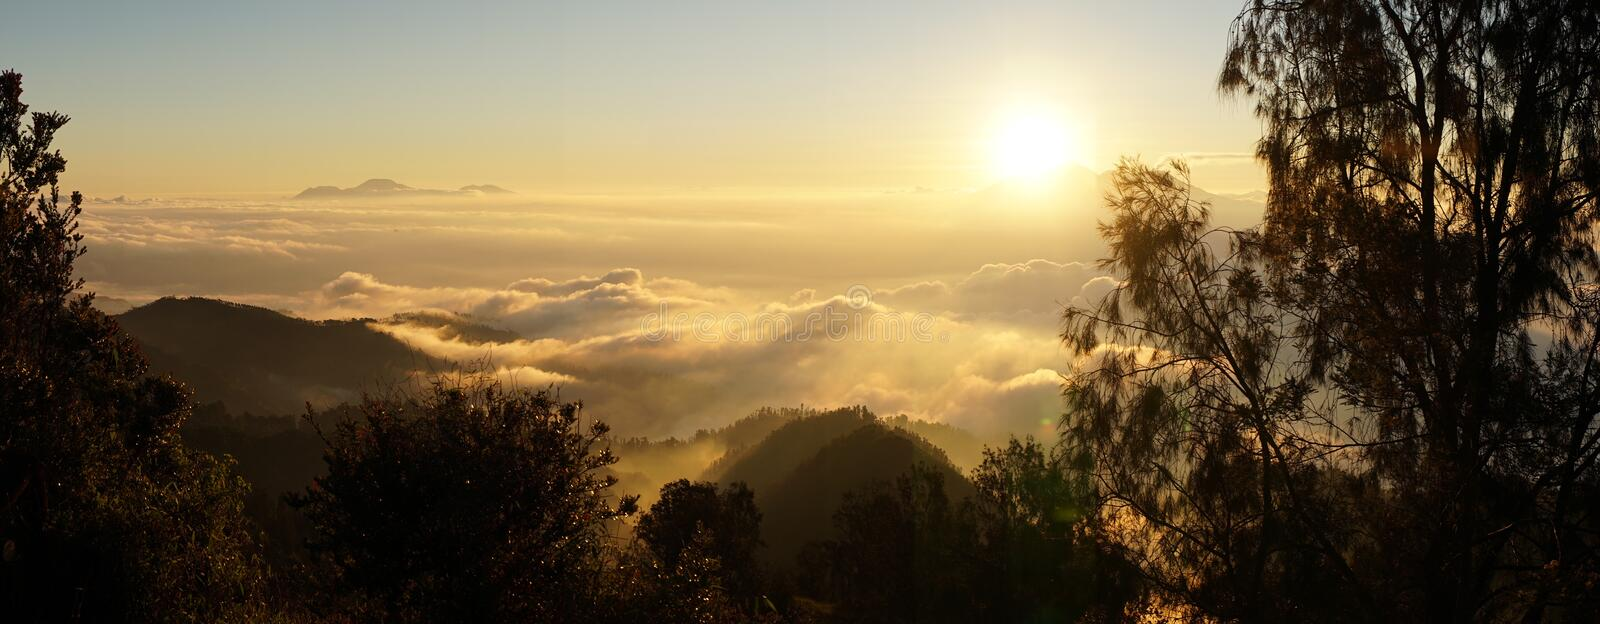 Mount Bromo active volcano within the sea of sands in the Bromo-Tengger-Semeru National Park, Indonesia.  royalty free stock photo